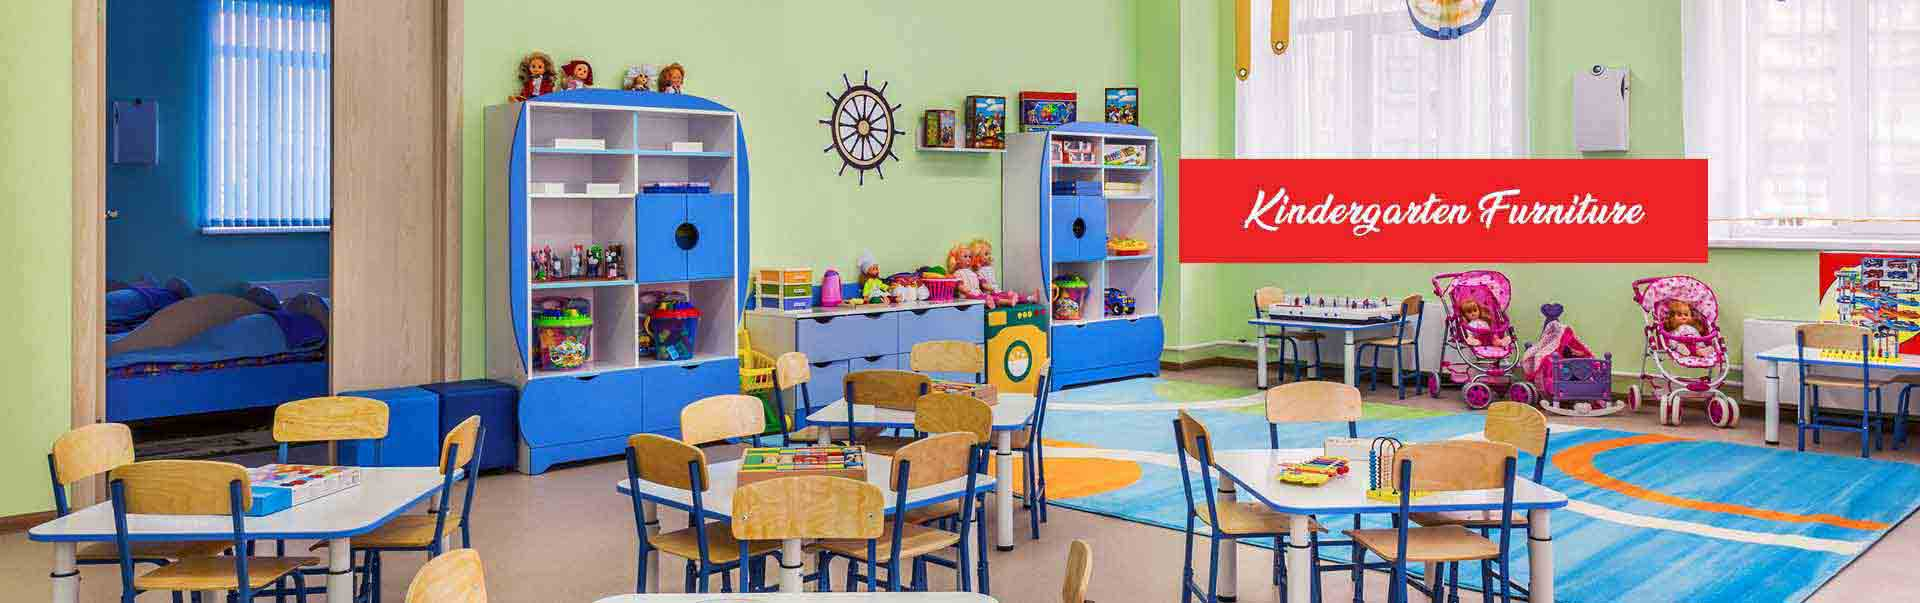 Kindergarten Furniture Manufacturers in Delhi